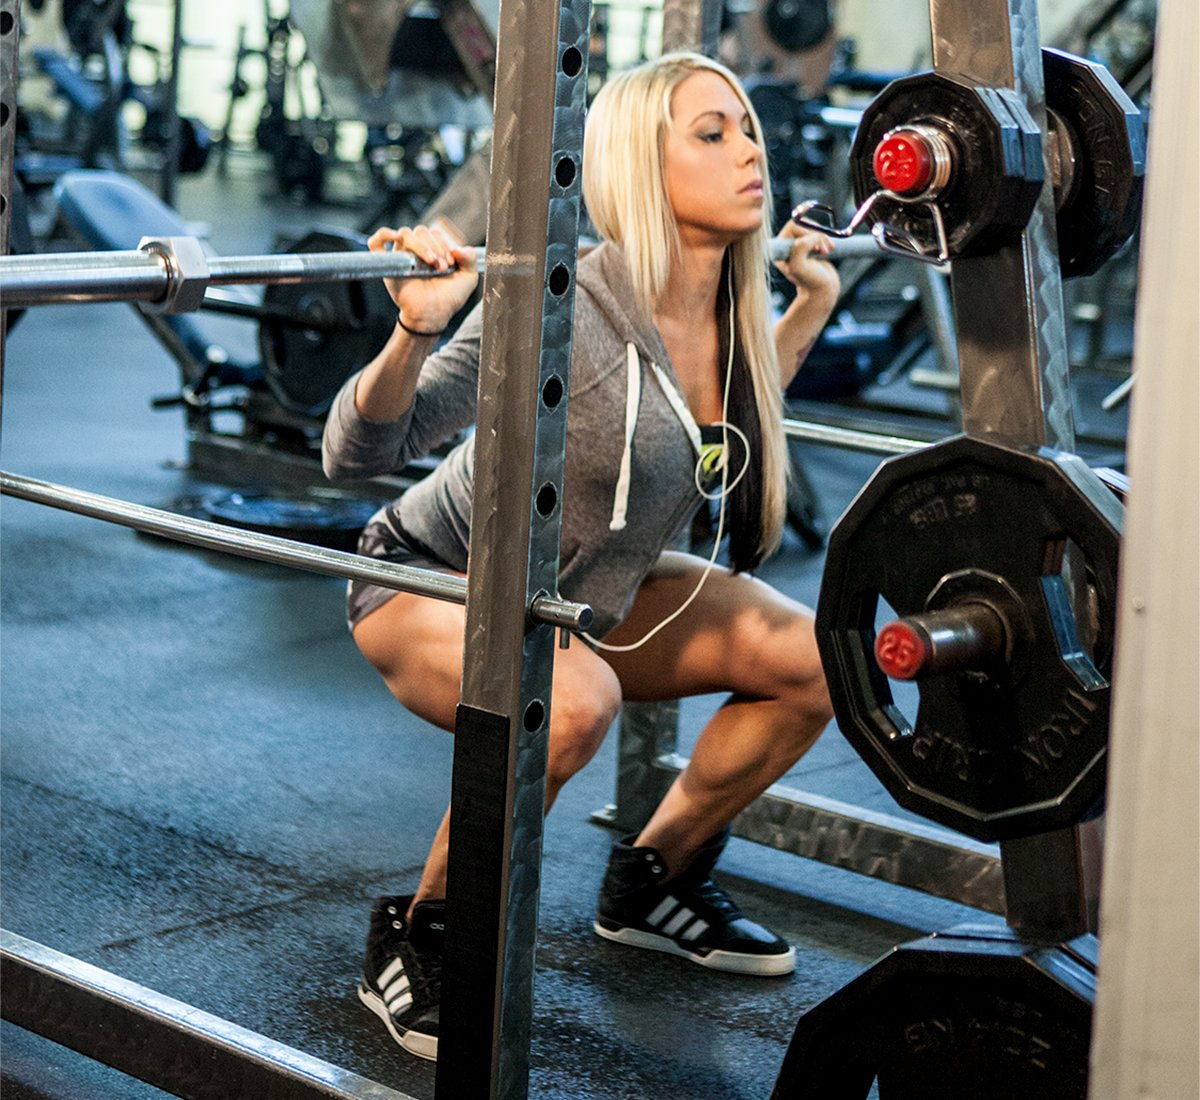 Weight Lifting Gym Fitness Workout Exercise Training Body: Ashley Hoffmann's Surefire Strength Plan